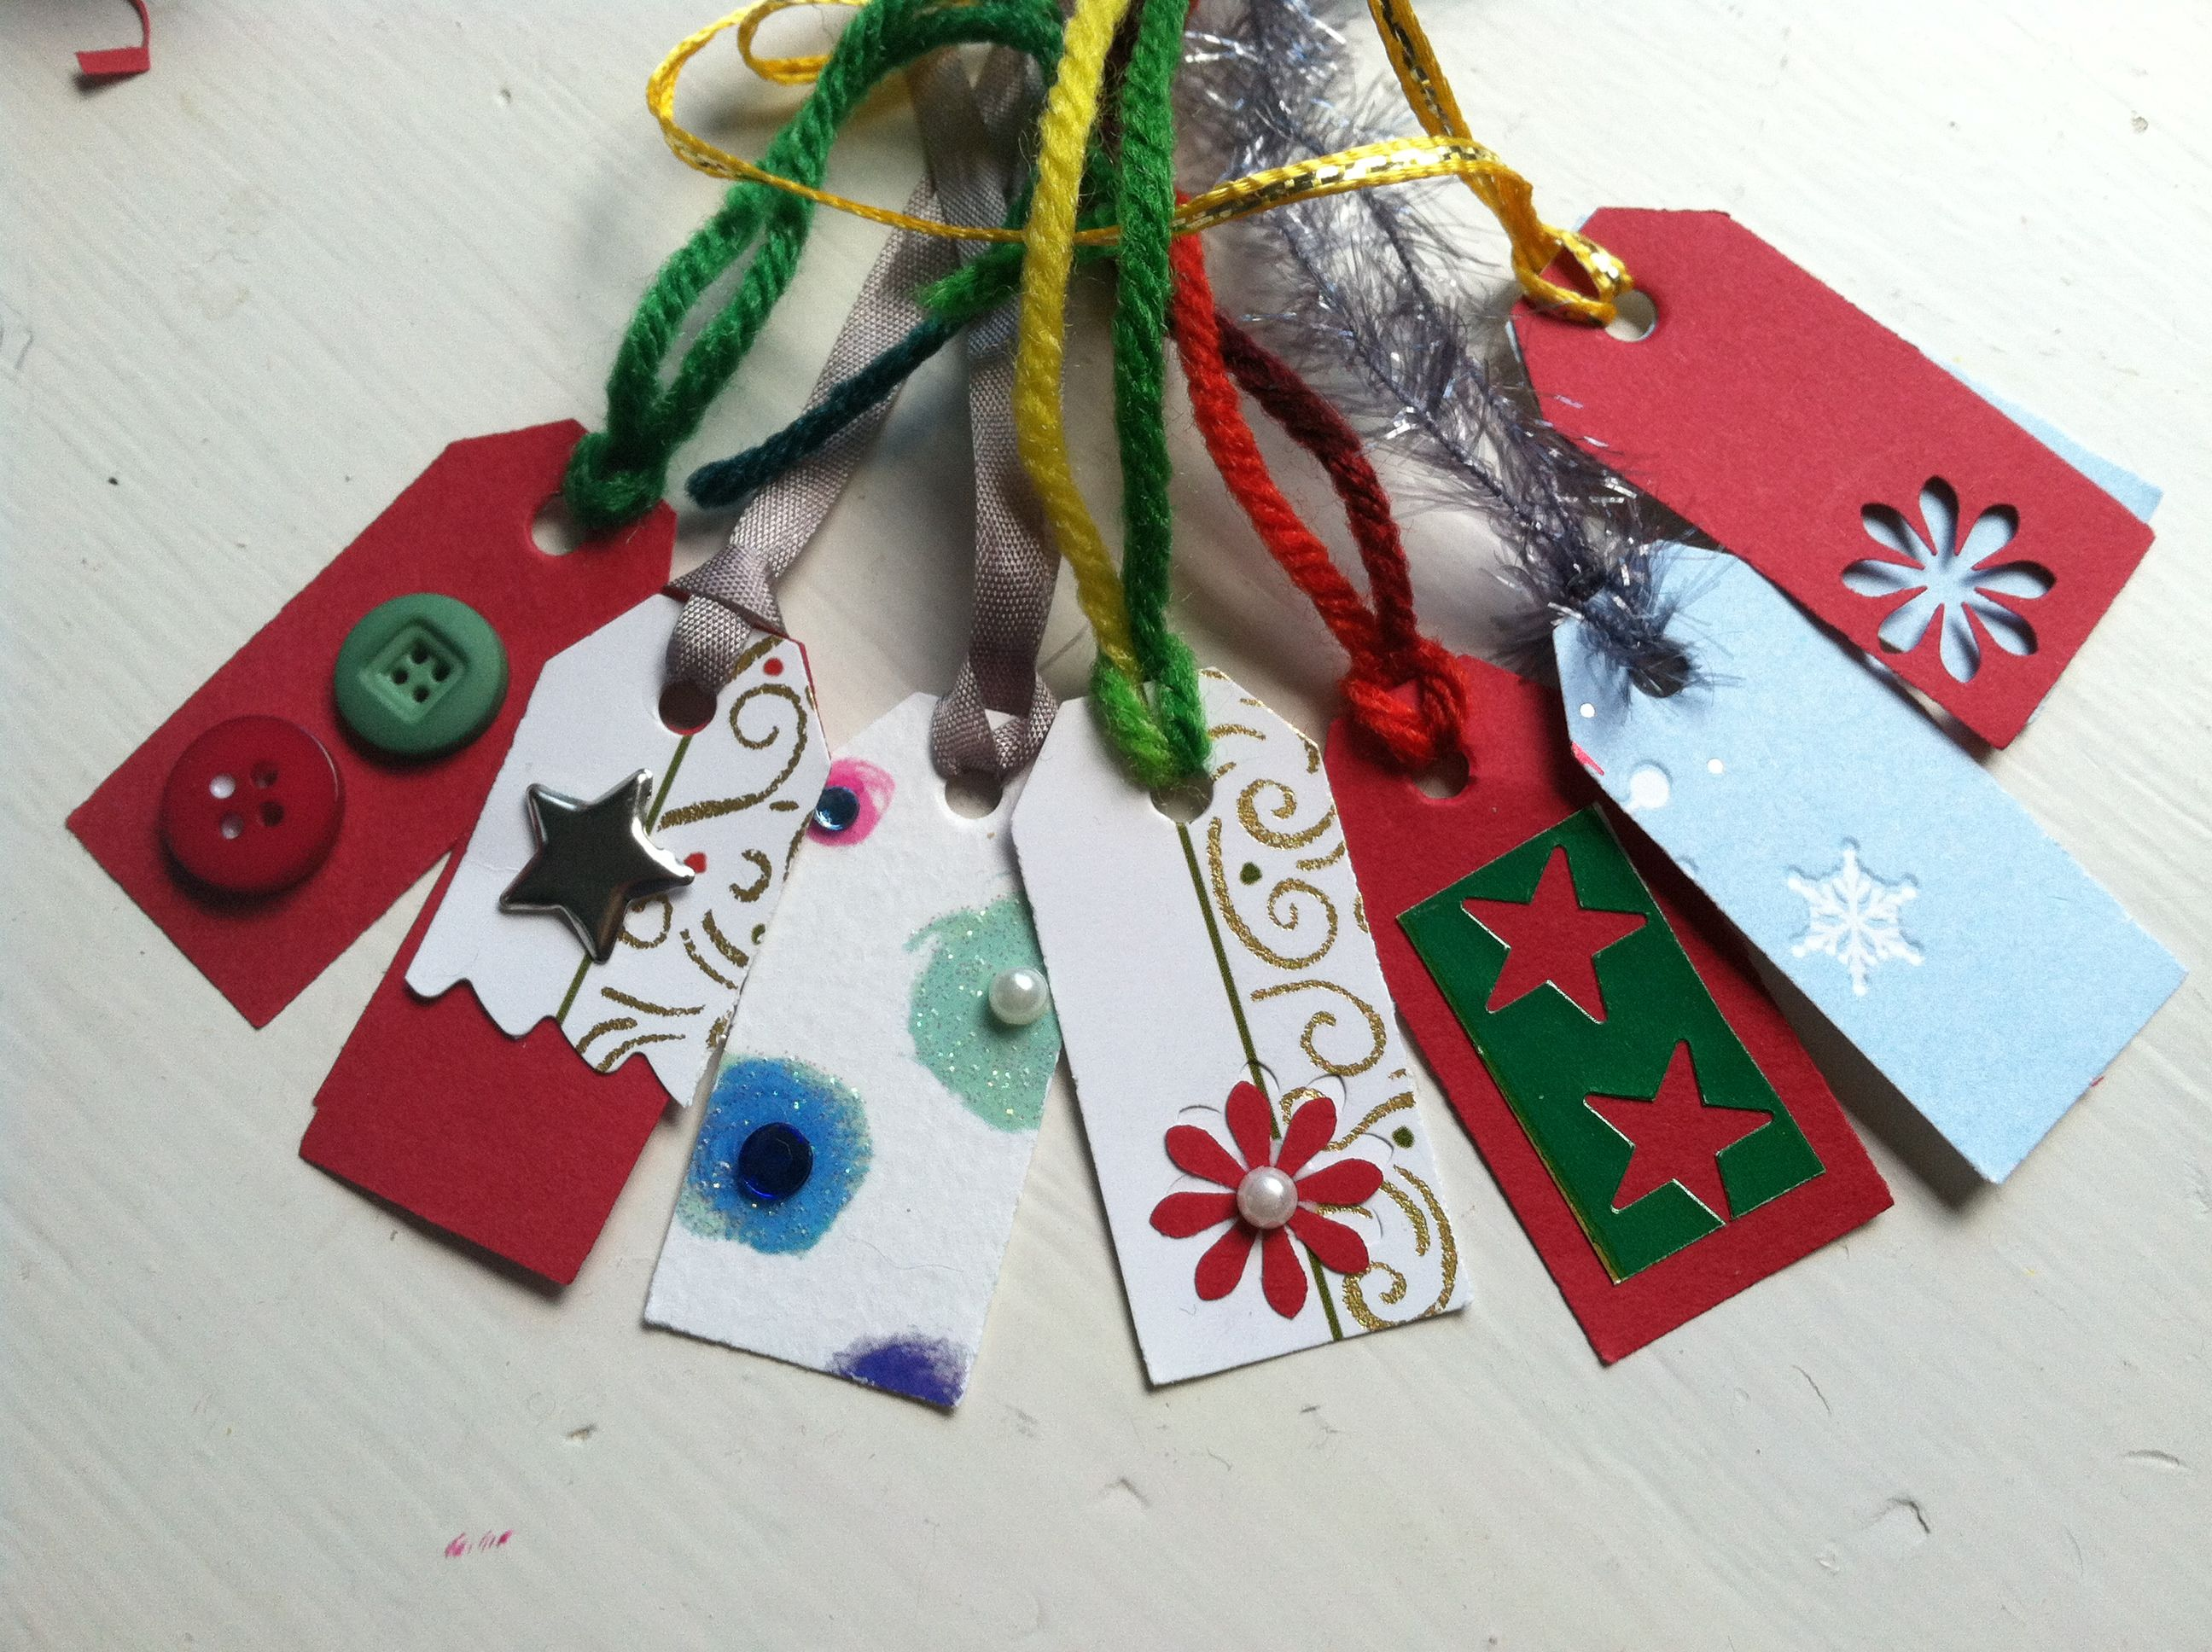 Make It Yourself: Upcycle Old Christmas Cards Into Gift Tags